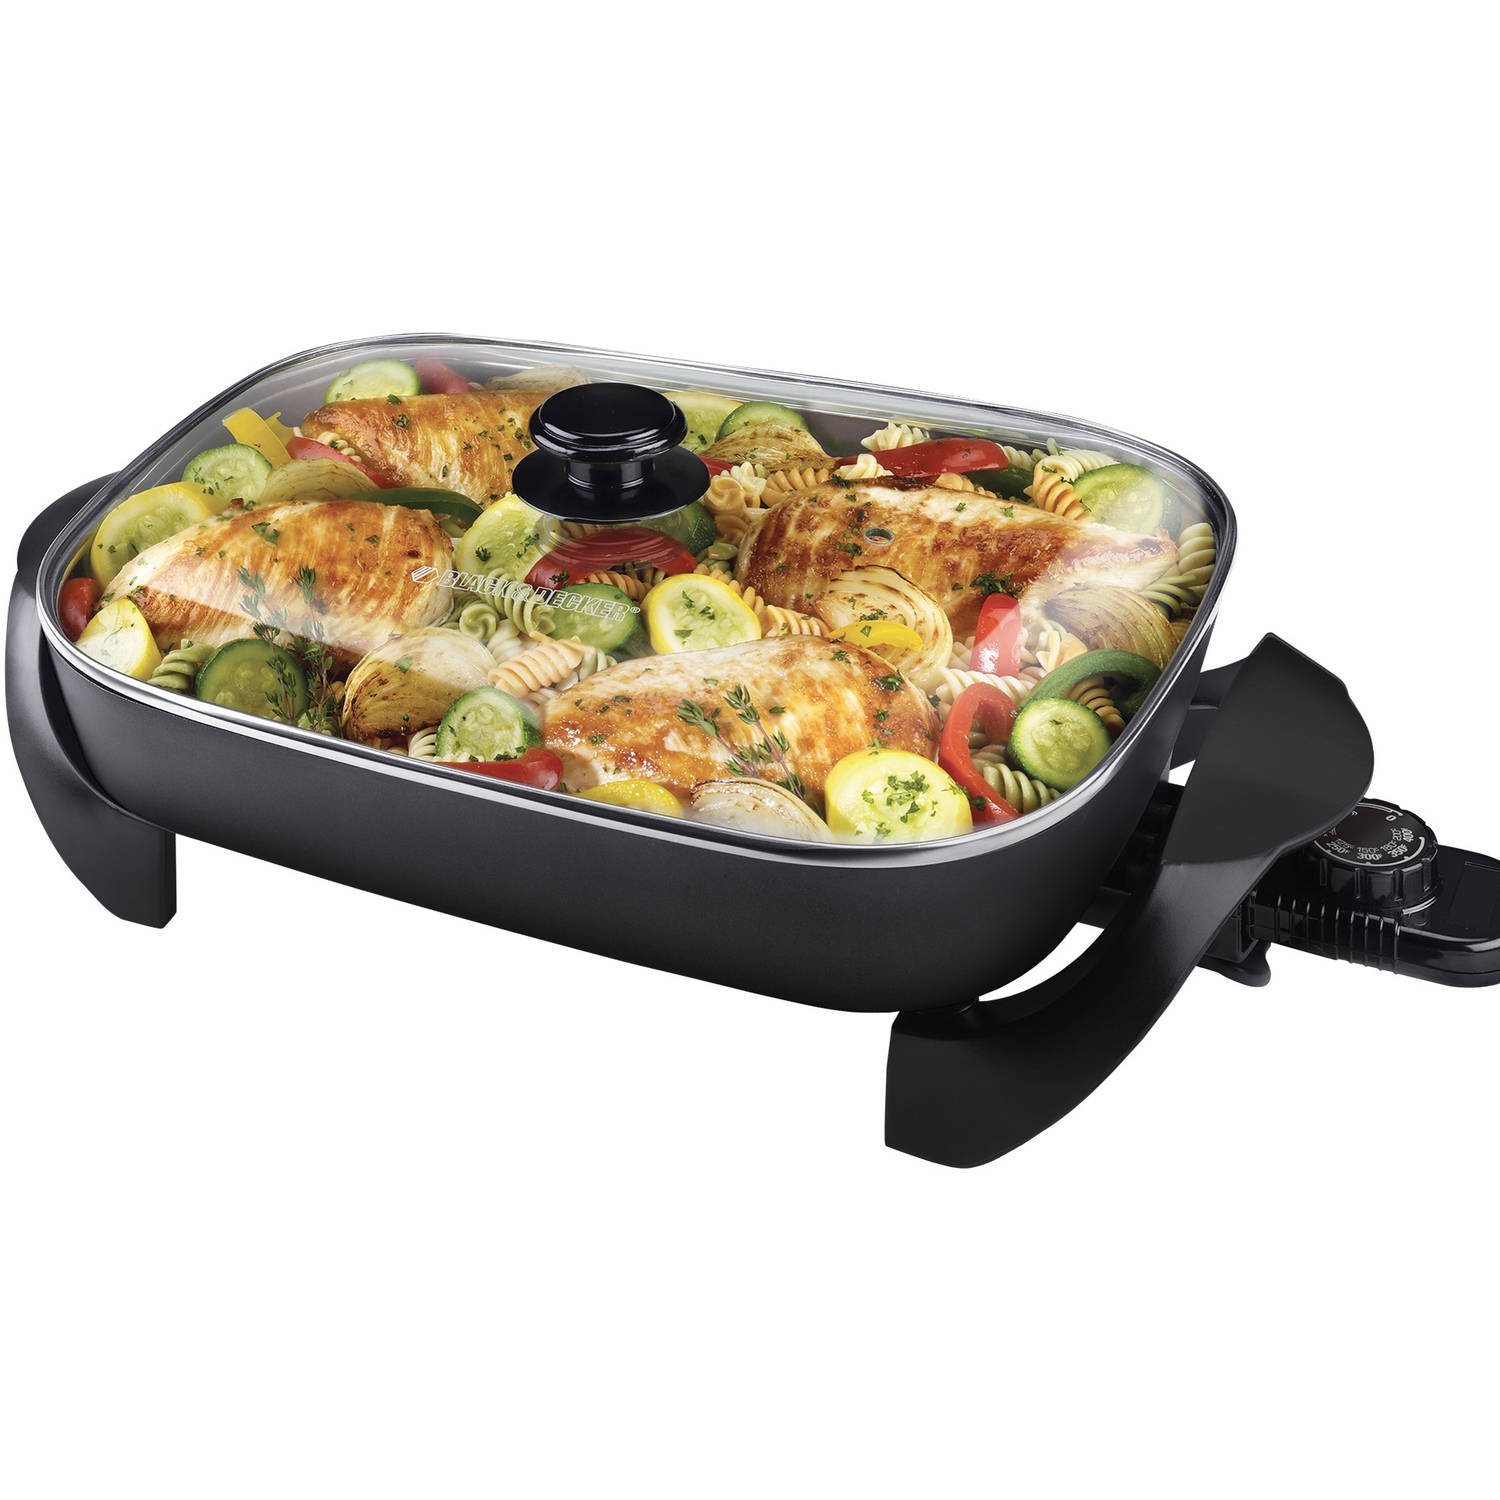 BLACK+DECKER Family Size Electric Skillet & Glass Lid, SK1215BC